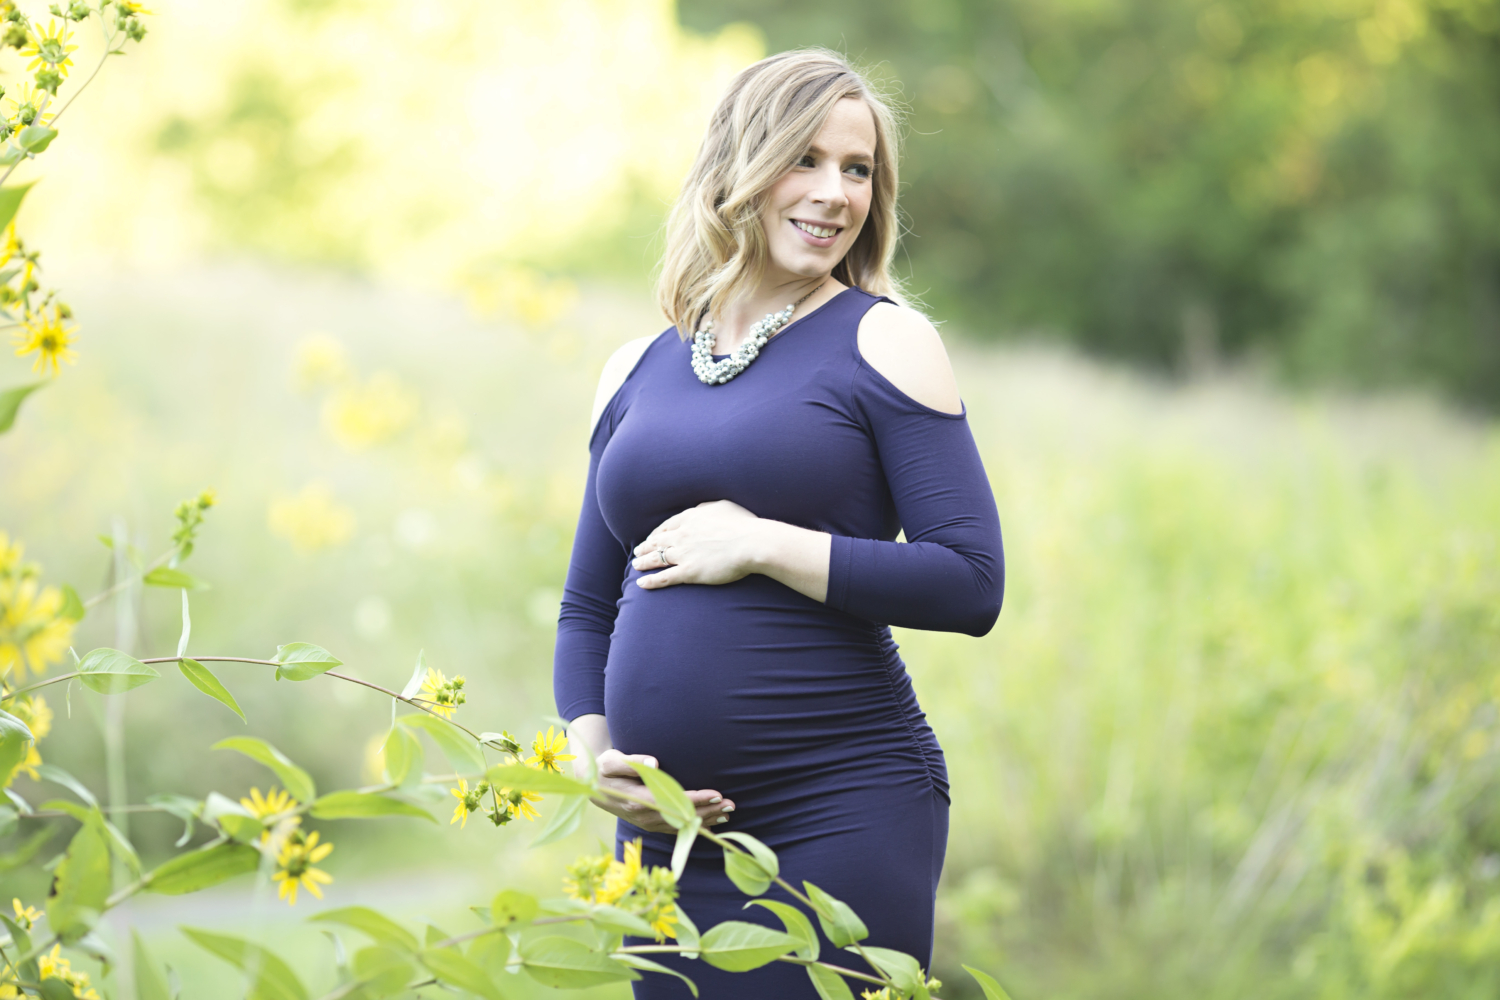 West-Hartford-CT-Maternity-Photography-50